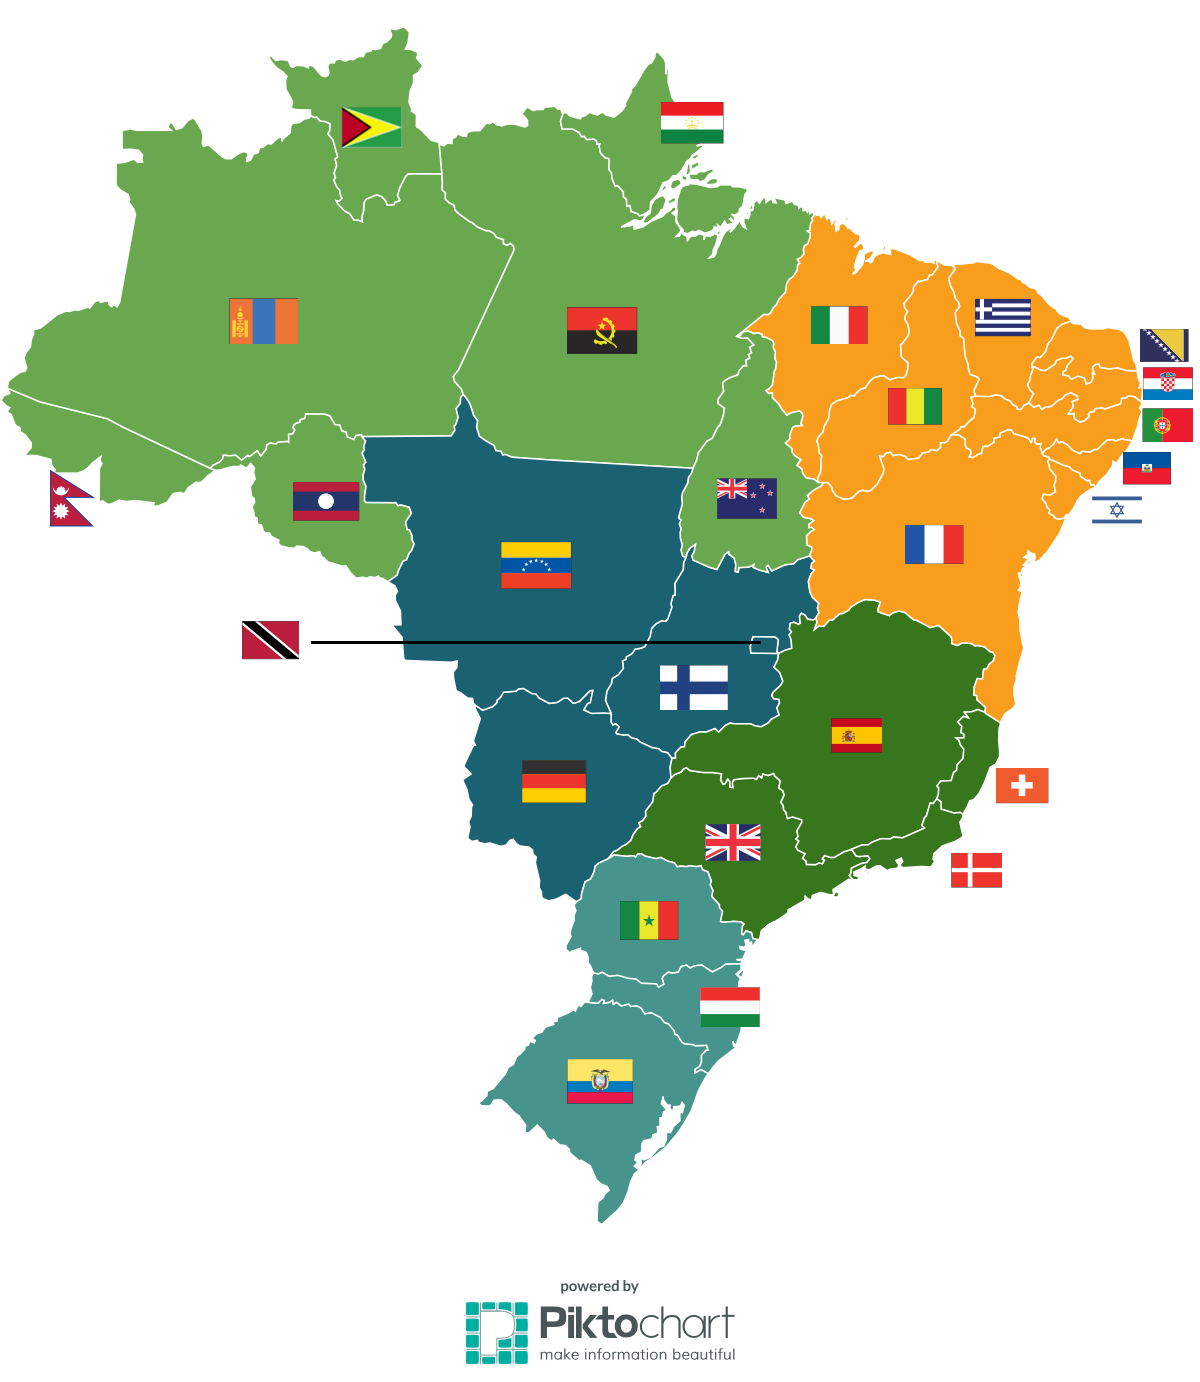 Real Size Of Countries World Map.The Real Size Of Brazilian States Compared To Other Countries